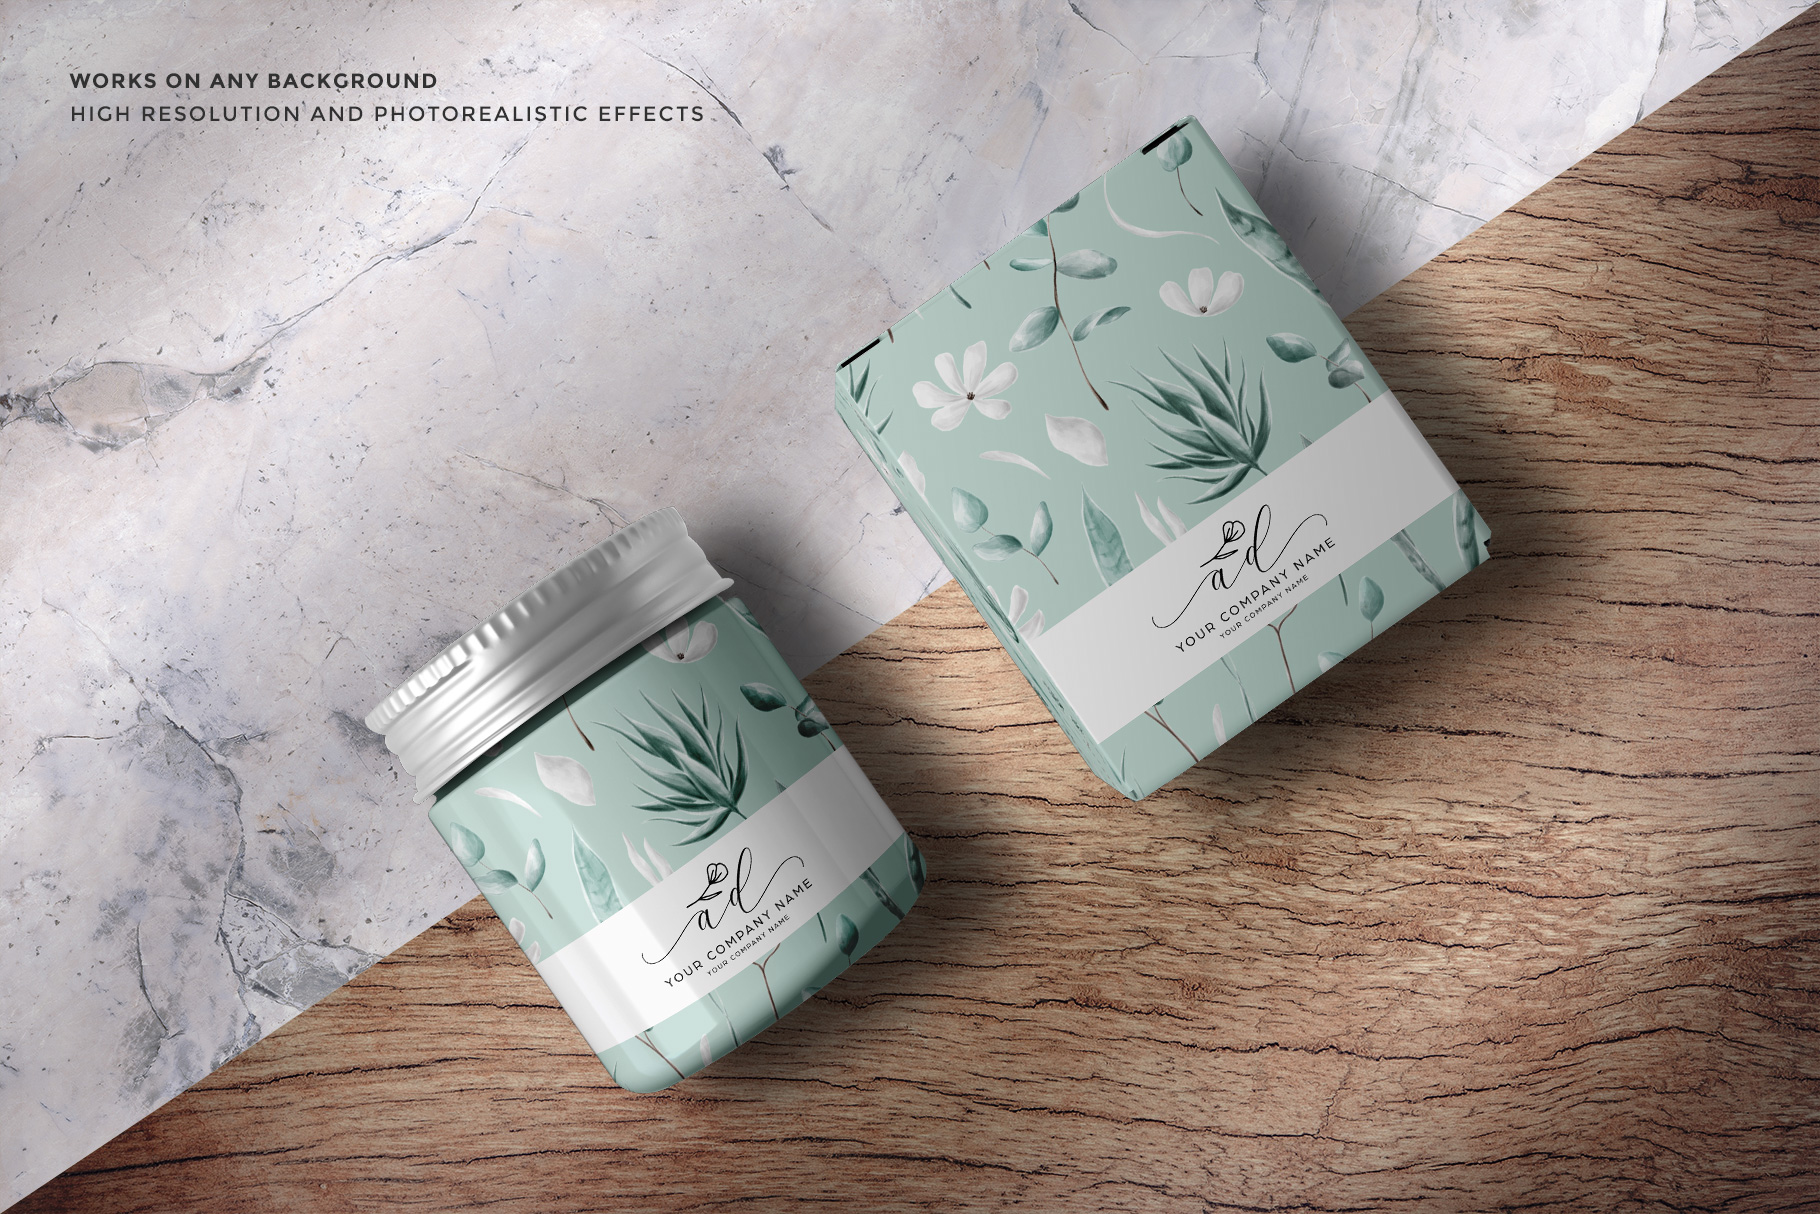 background options of the top view cosmetic bottle and box packaging mockup